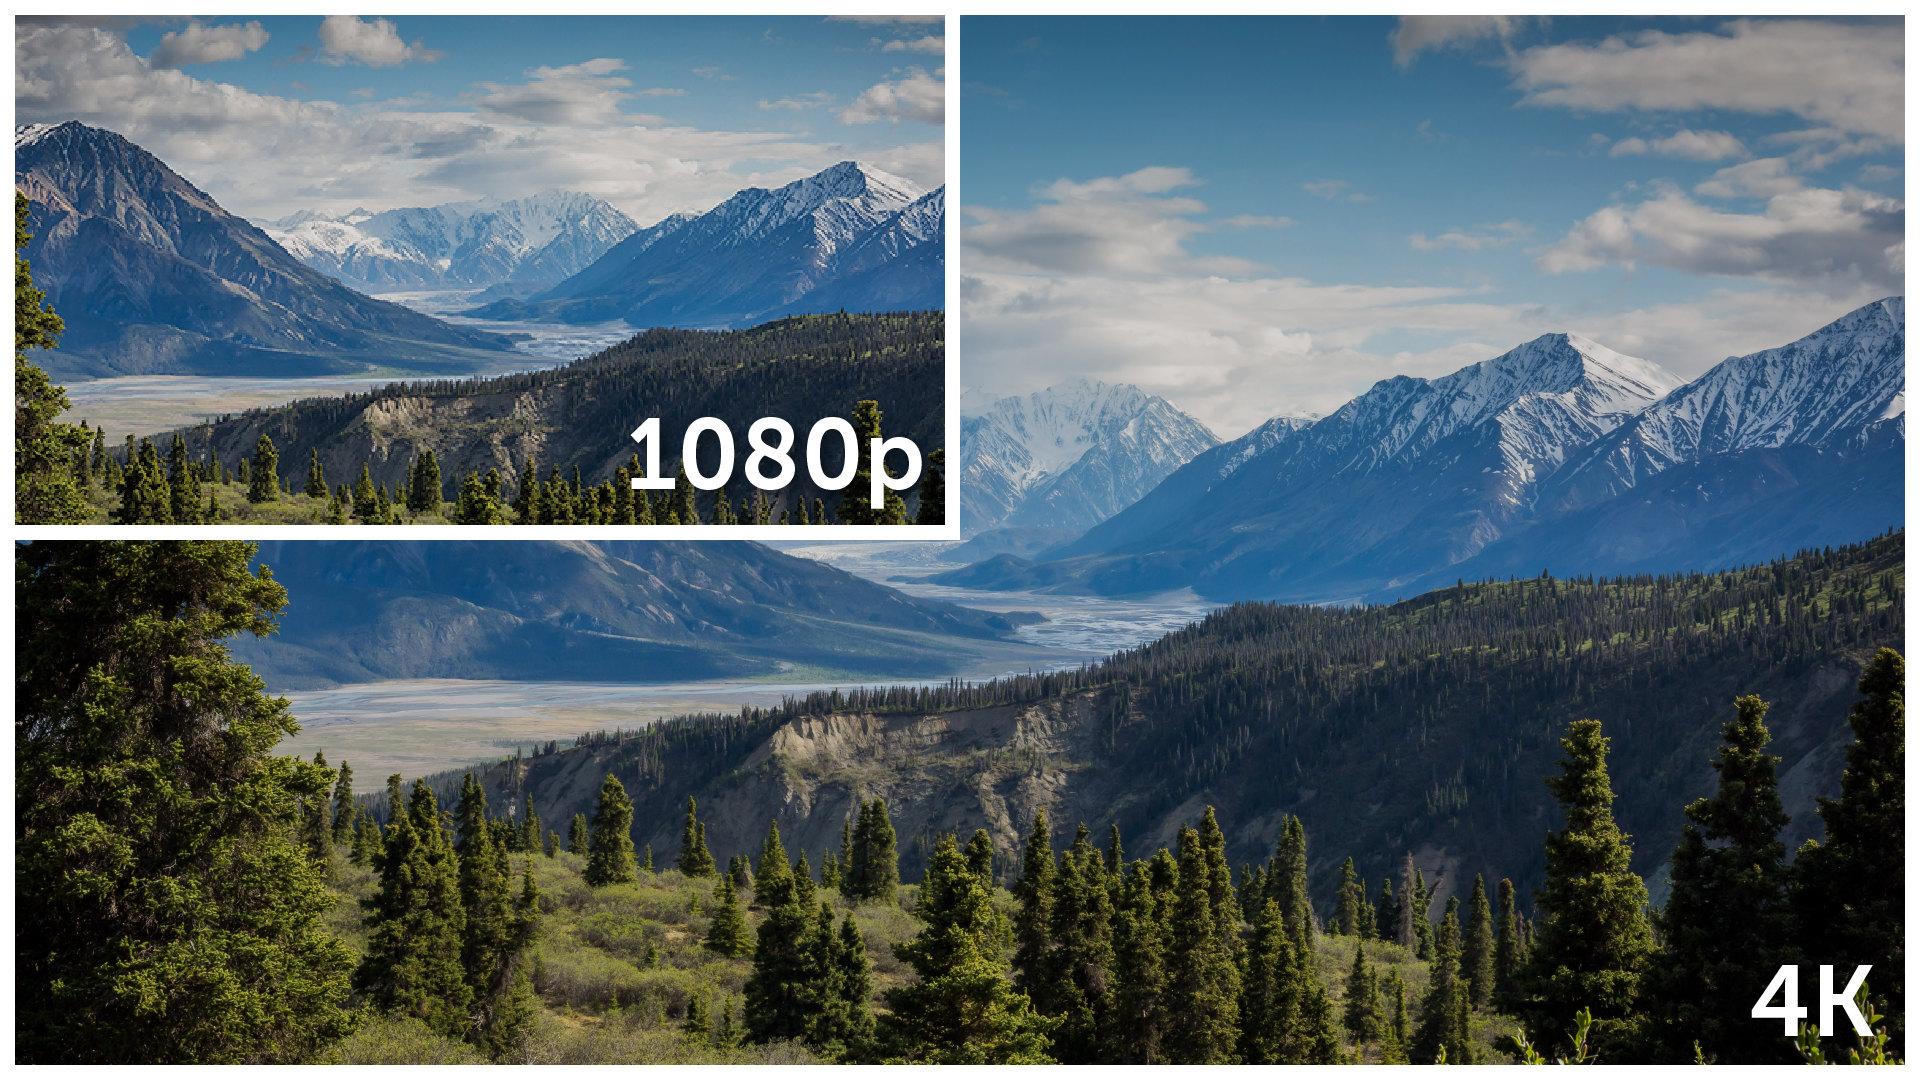 Streaming in 4K Resolution vs. 1080p